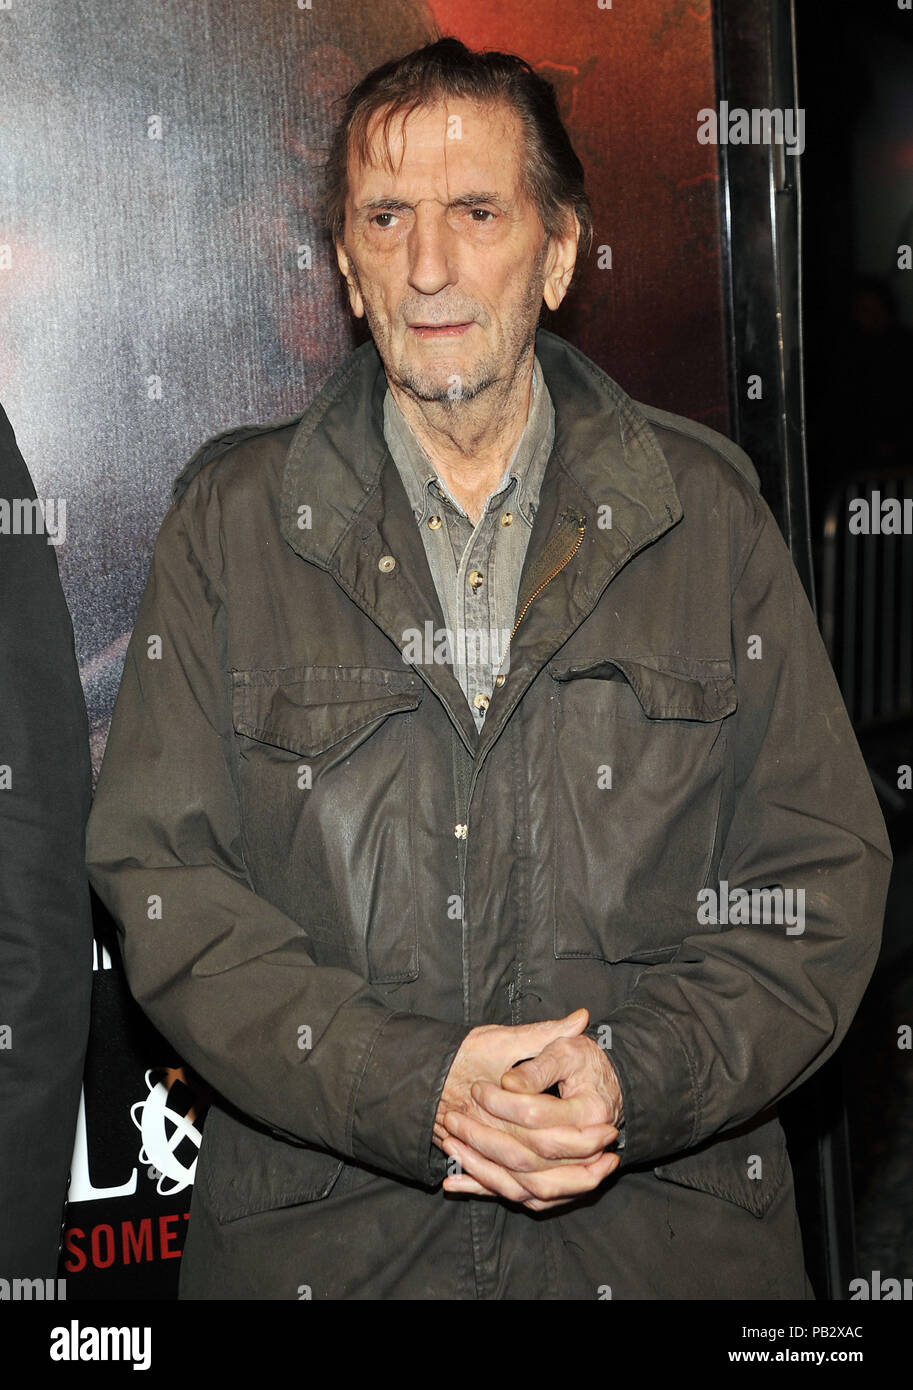 Harry Dean Stanton Big Love Premiere At The Arclight Theatre In Los Angeles Stantonharrydean 29 Red Carpet Event Vertical Usa Film Industry Celebrities Photography Bestof Arts Culture And Entertainment Topix Celebrities Fashion